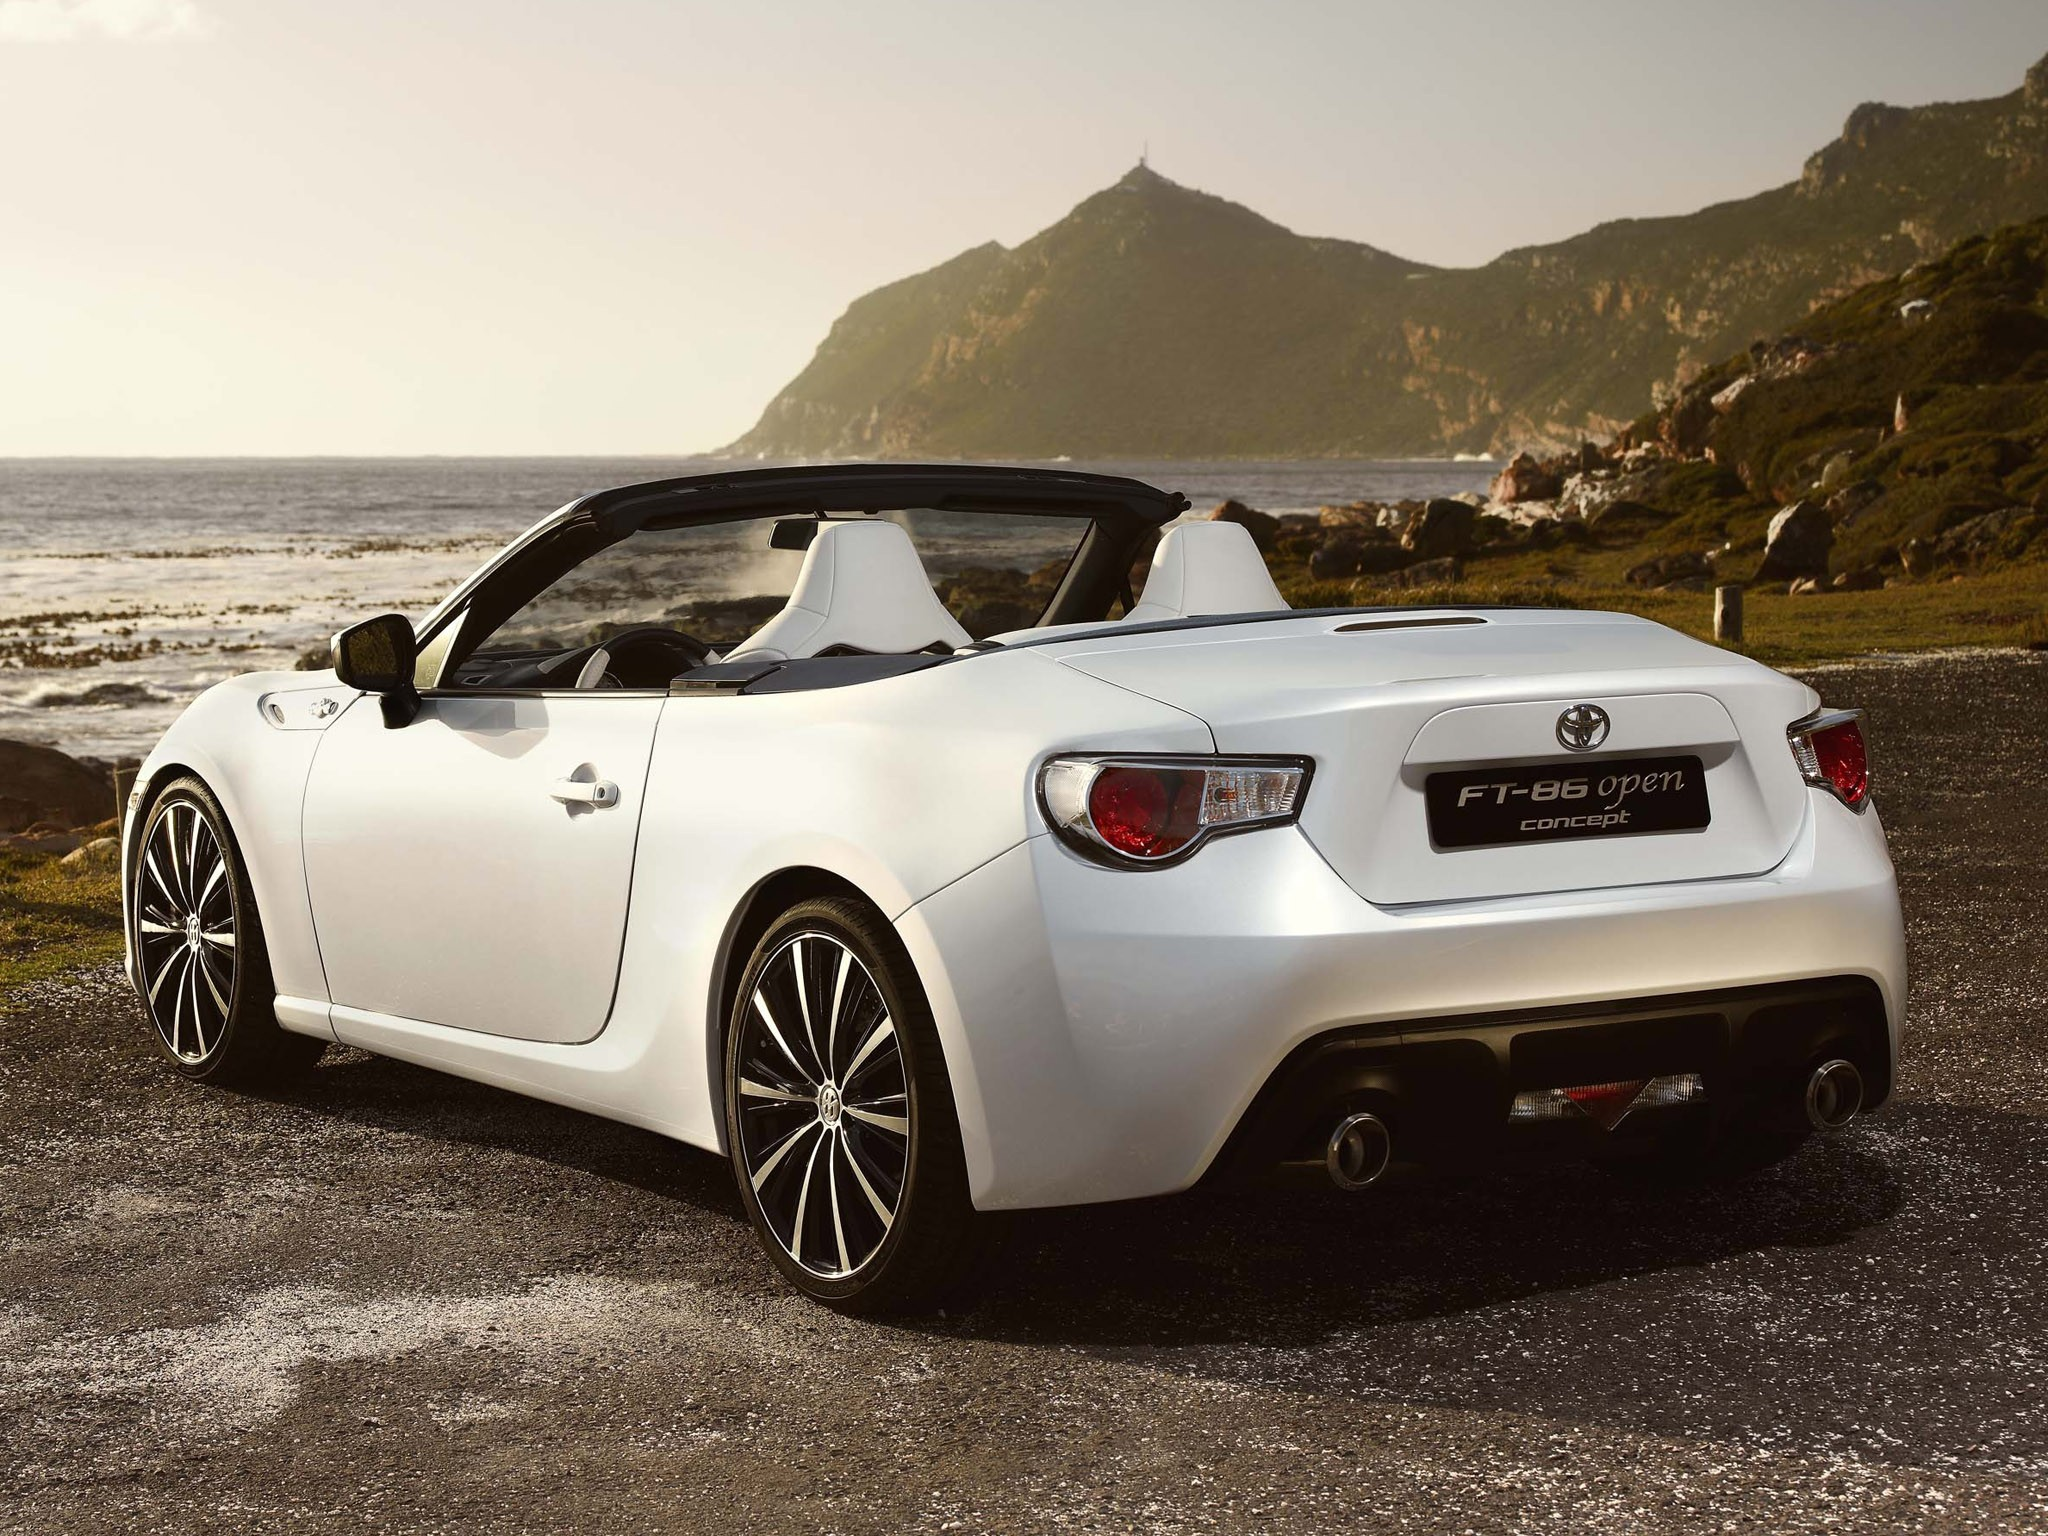 2013 Toyota FT86 Open Concept